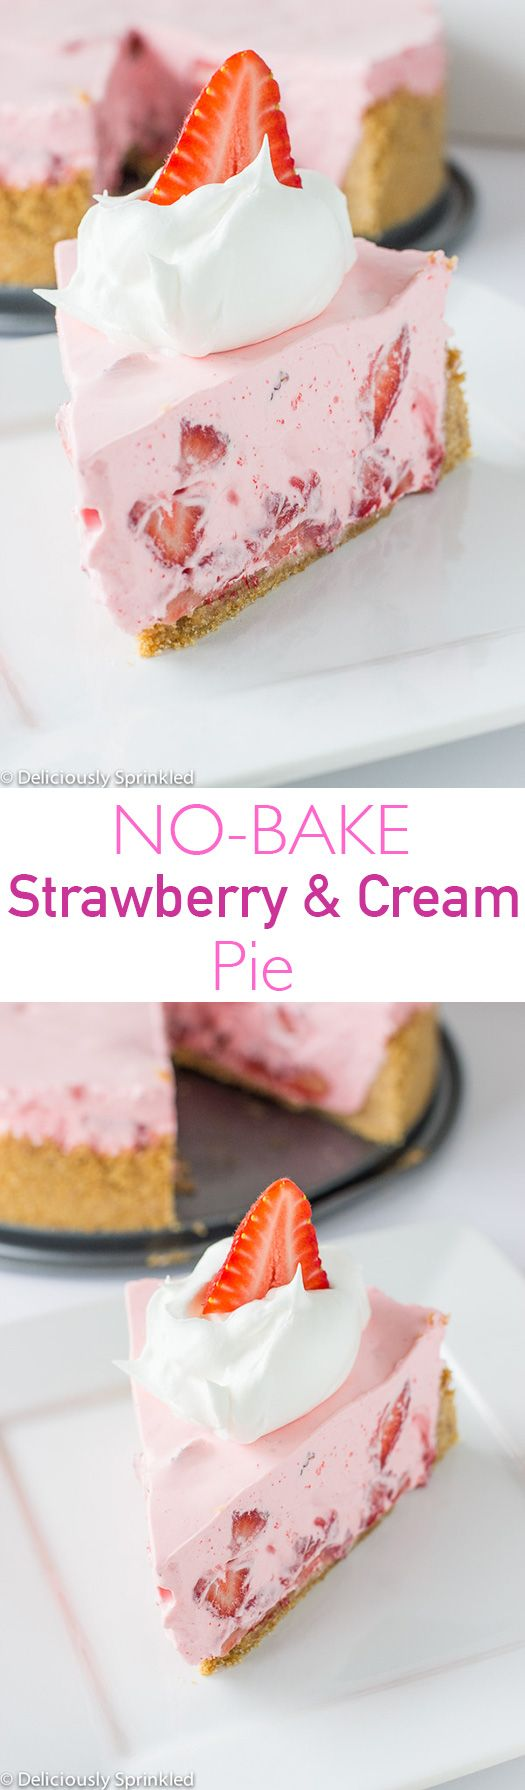 No-Bake Strawberry & Cream Pie (crust proportions)